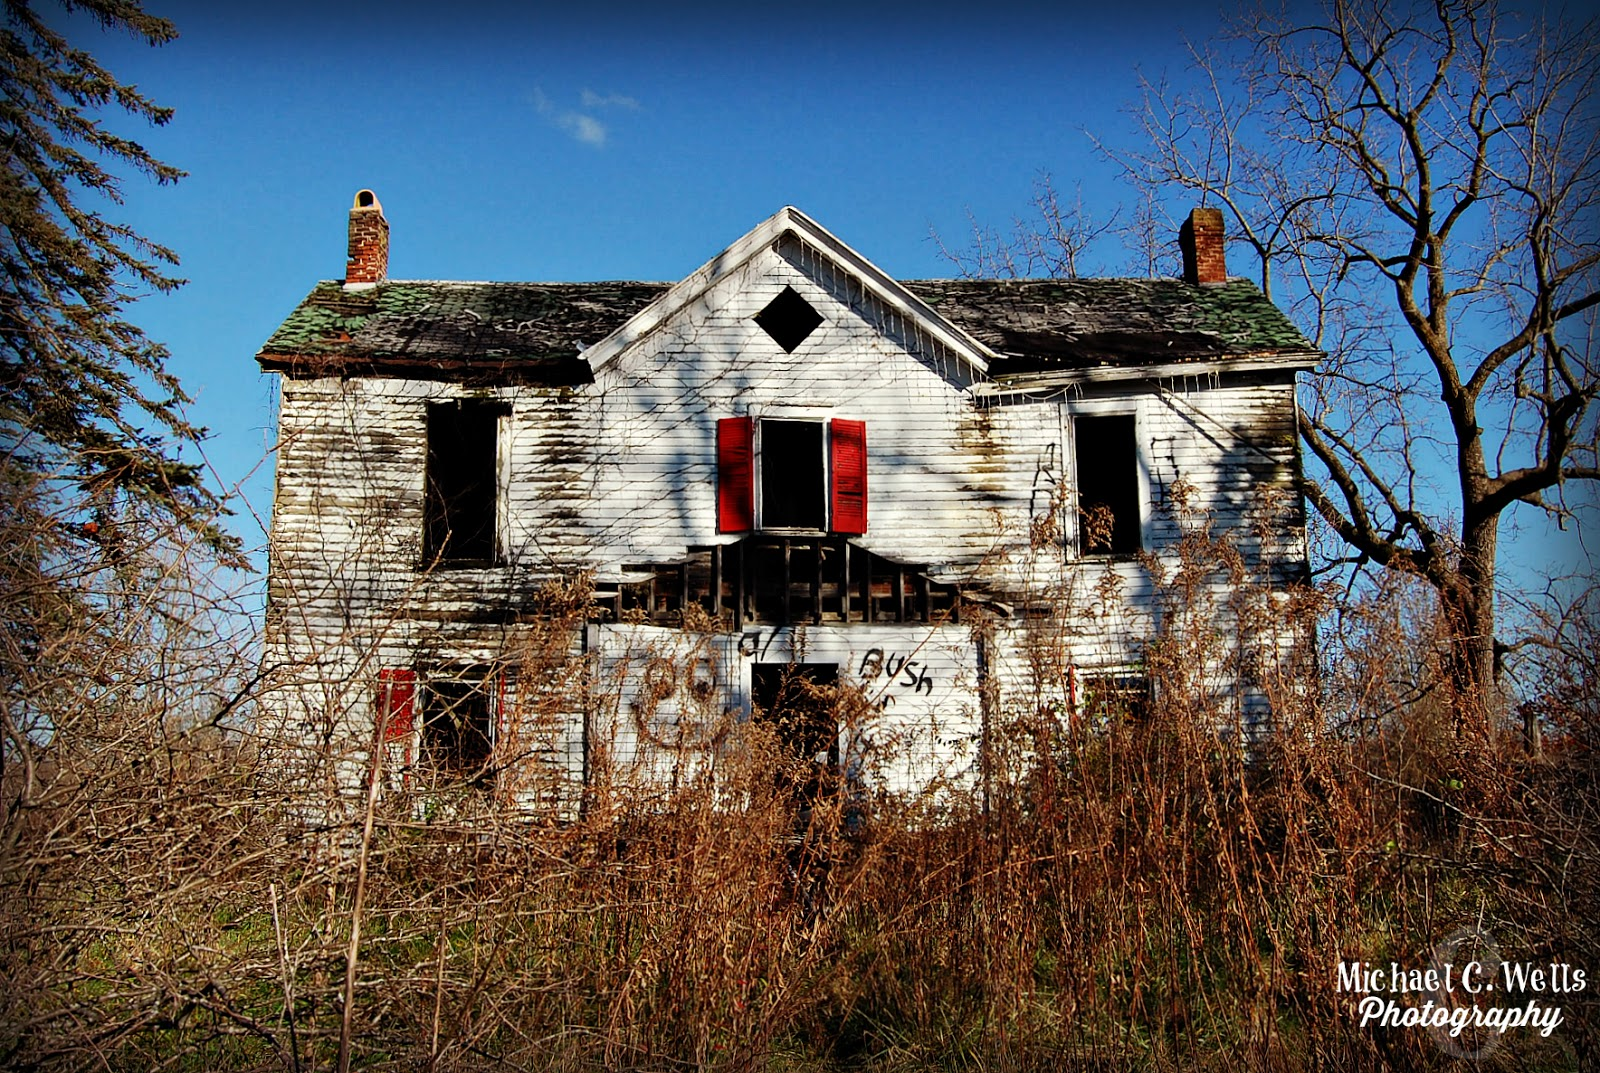 Built In  This Abandoned Farmhouse Was Originally Built With Green Shutters However The New Owners Quickly Painted Them Red And It Became The